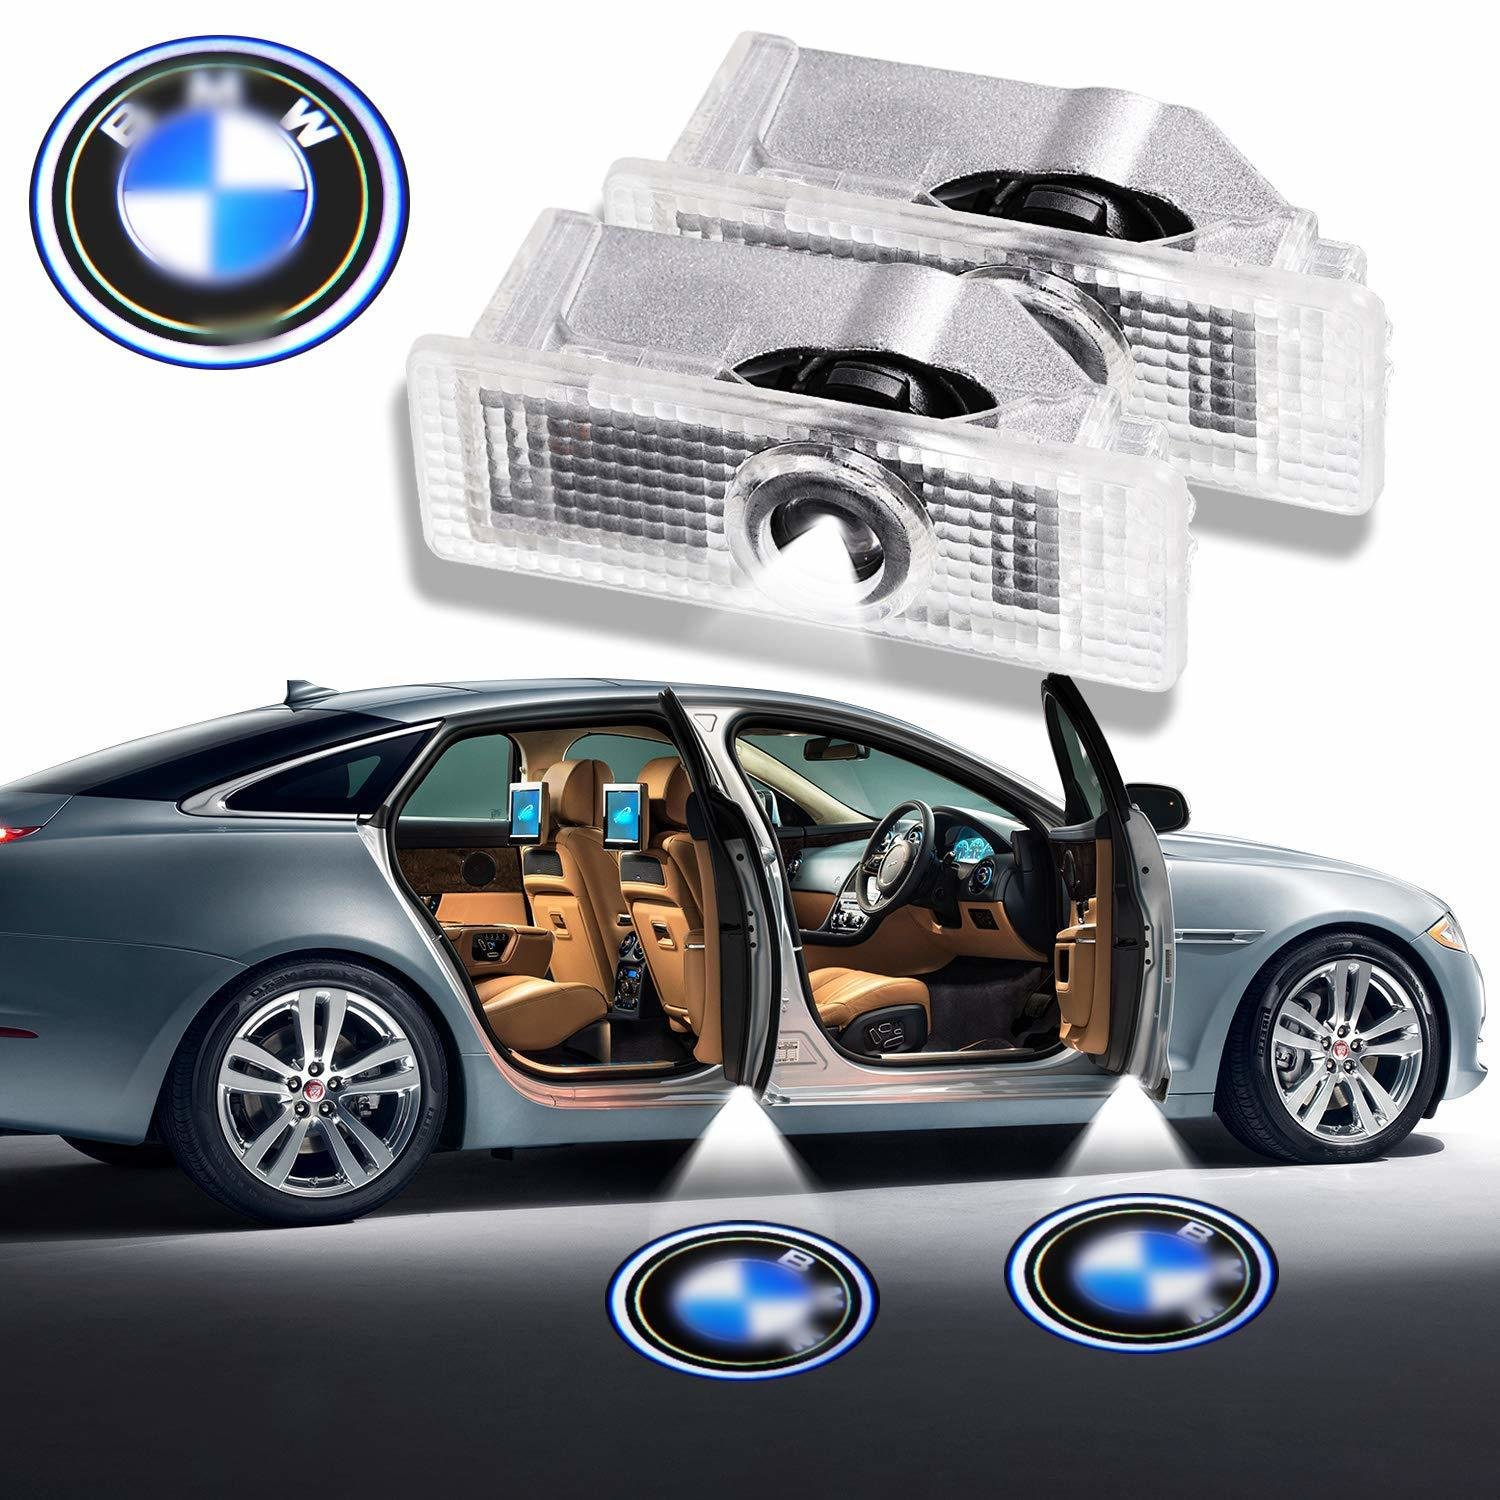 BMW Logo Projecteur LED pour BMW Series UNIVERSELLE - Car Design Projector Laser Embleme BMW Series